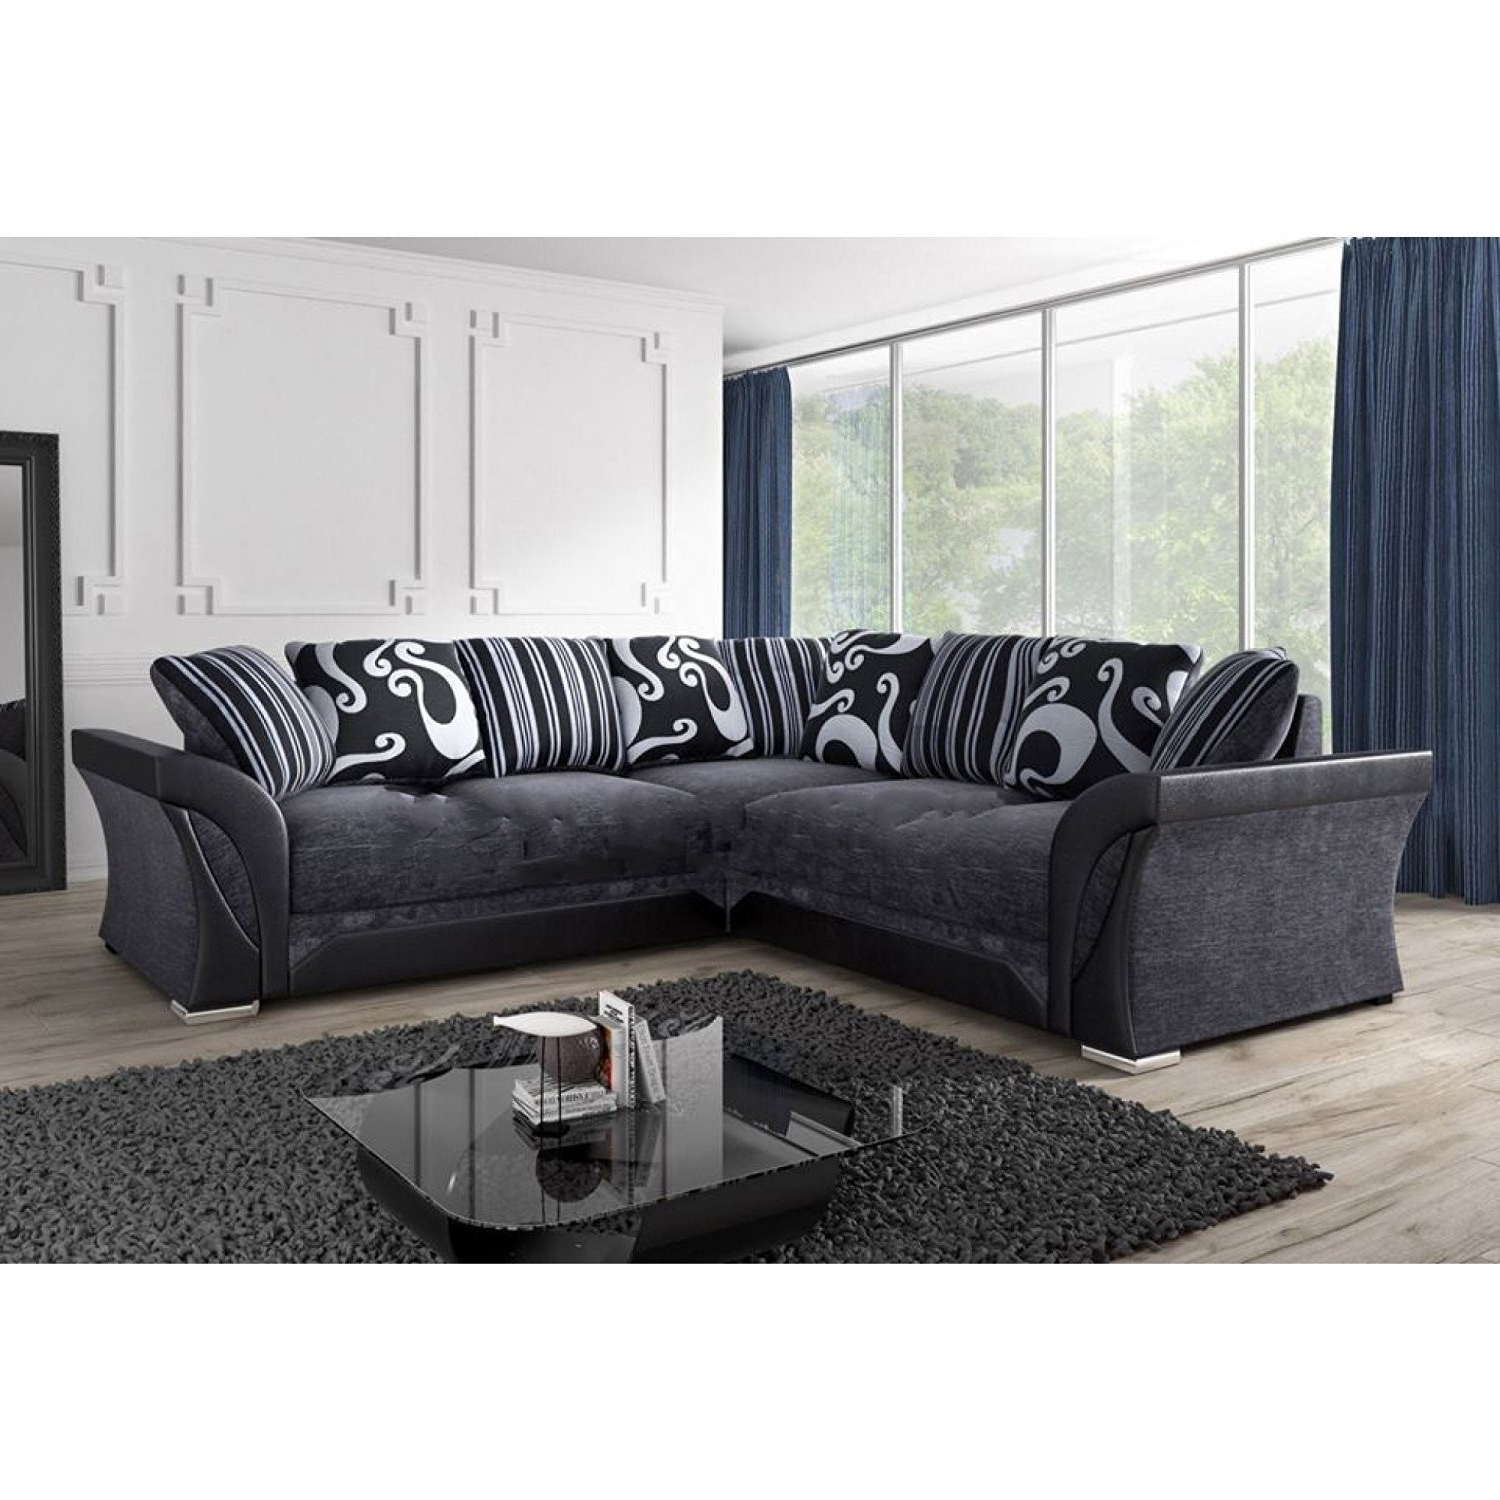 Lovely Corner Sofa Black And Grey – Mediasupload Pertaining To Most Recent Fabric Corner Sofas (View 13 of 20)